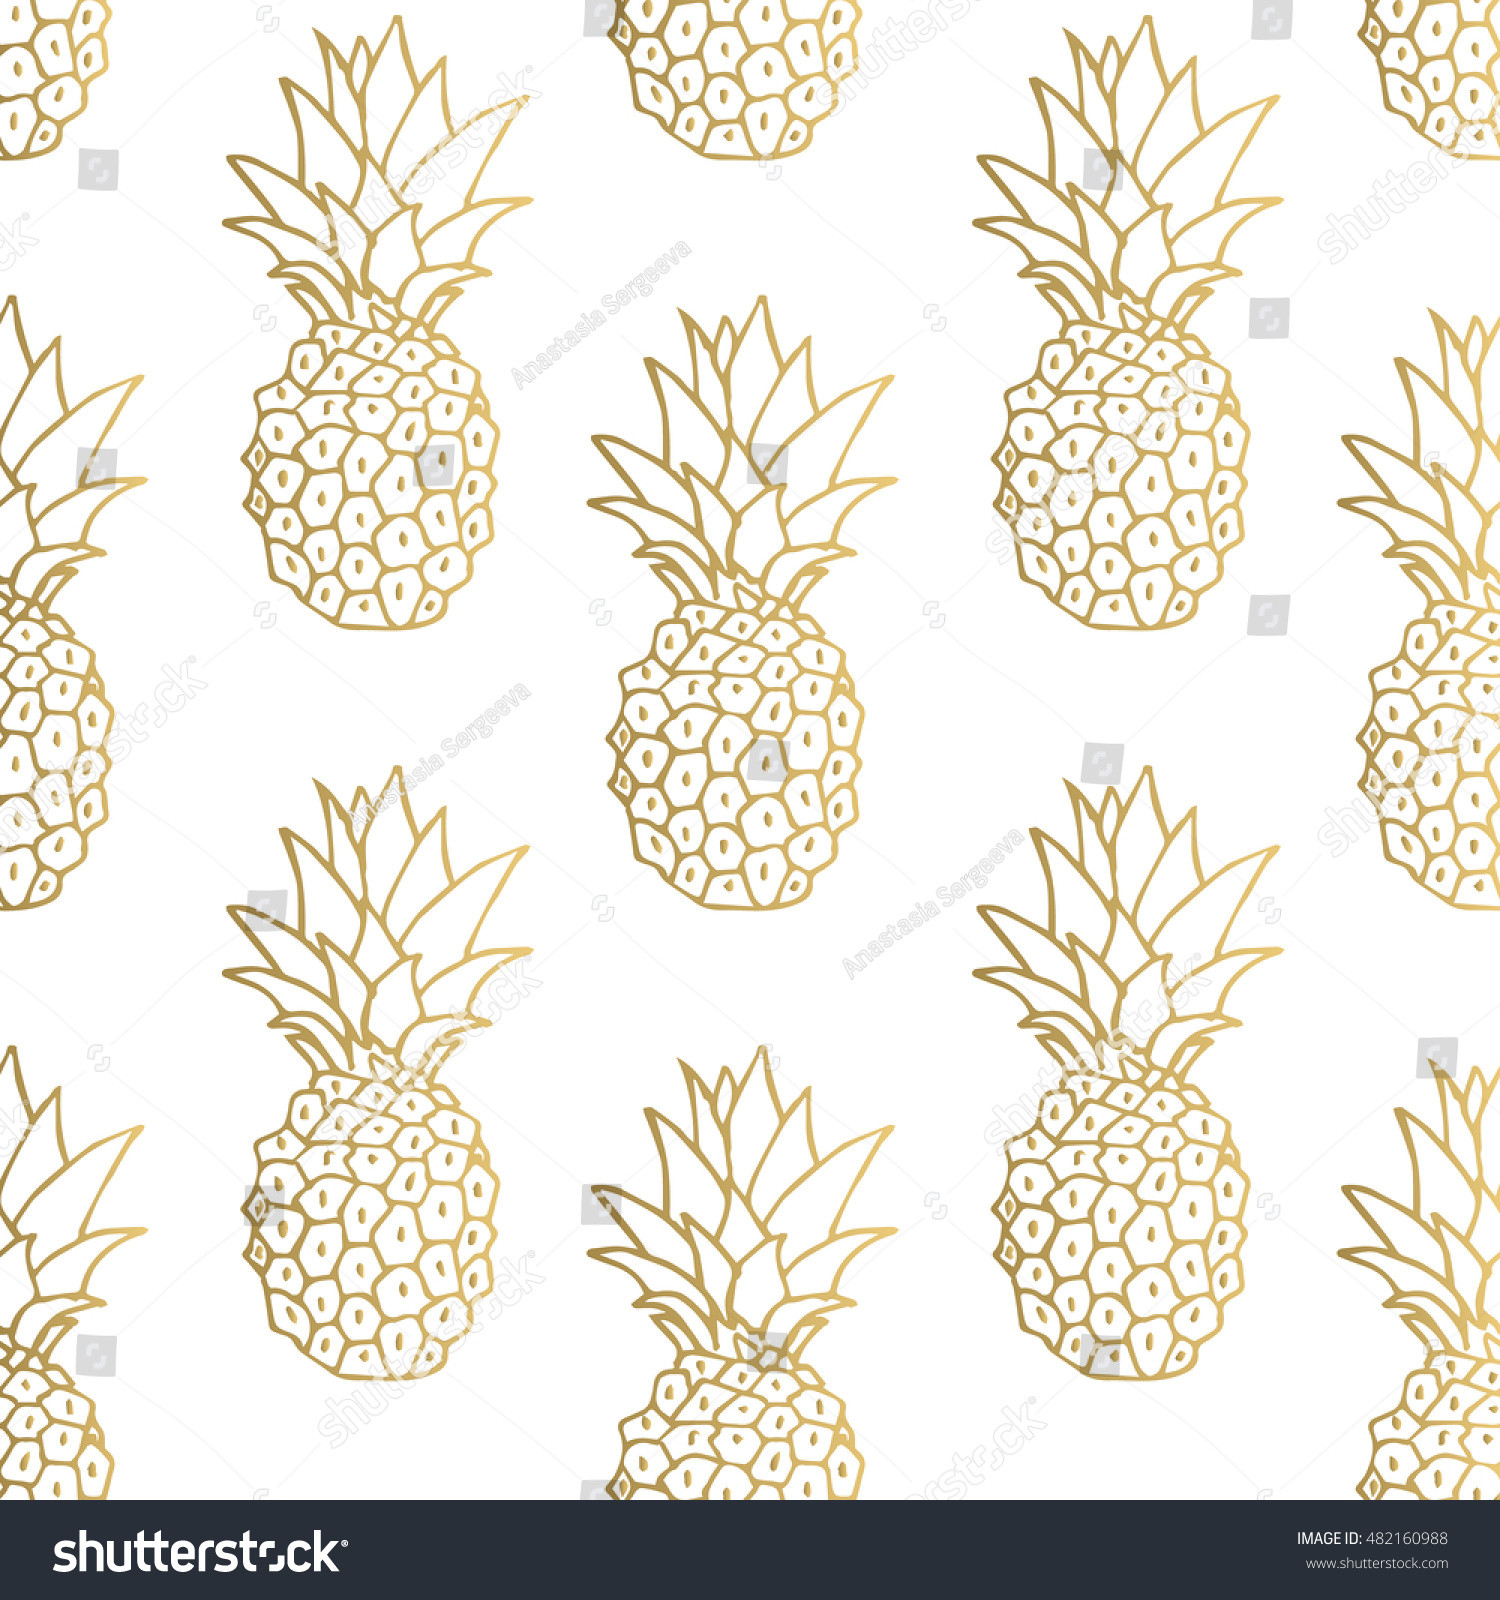 Pineapple Pattern New Pineapple Background Pineapple Background Yellow Of Amazing 47 Images Pineapple Pattern